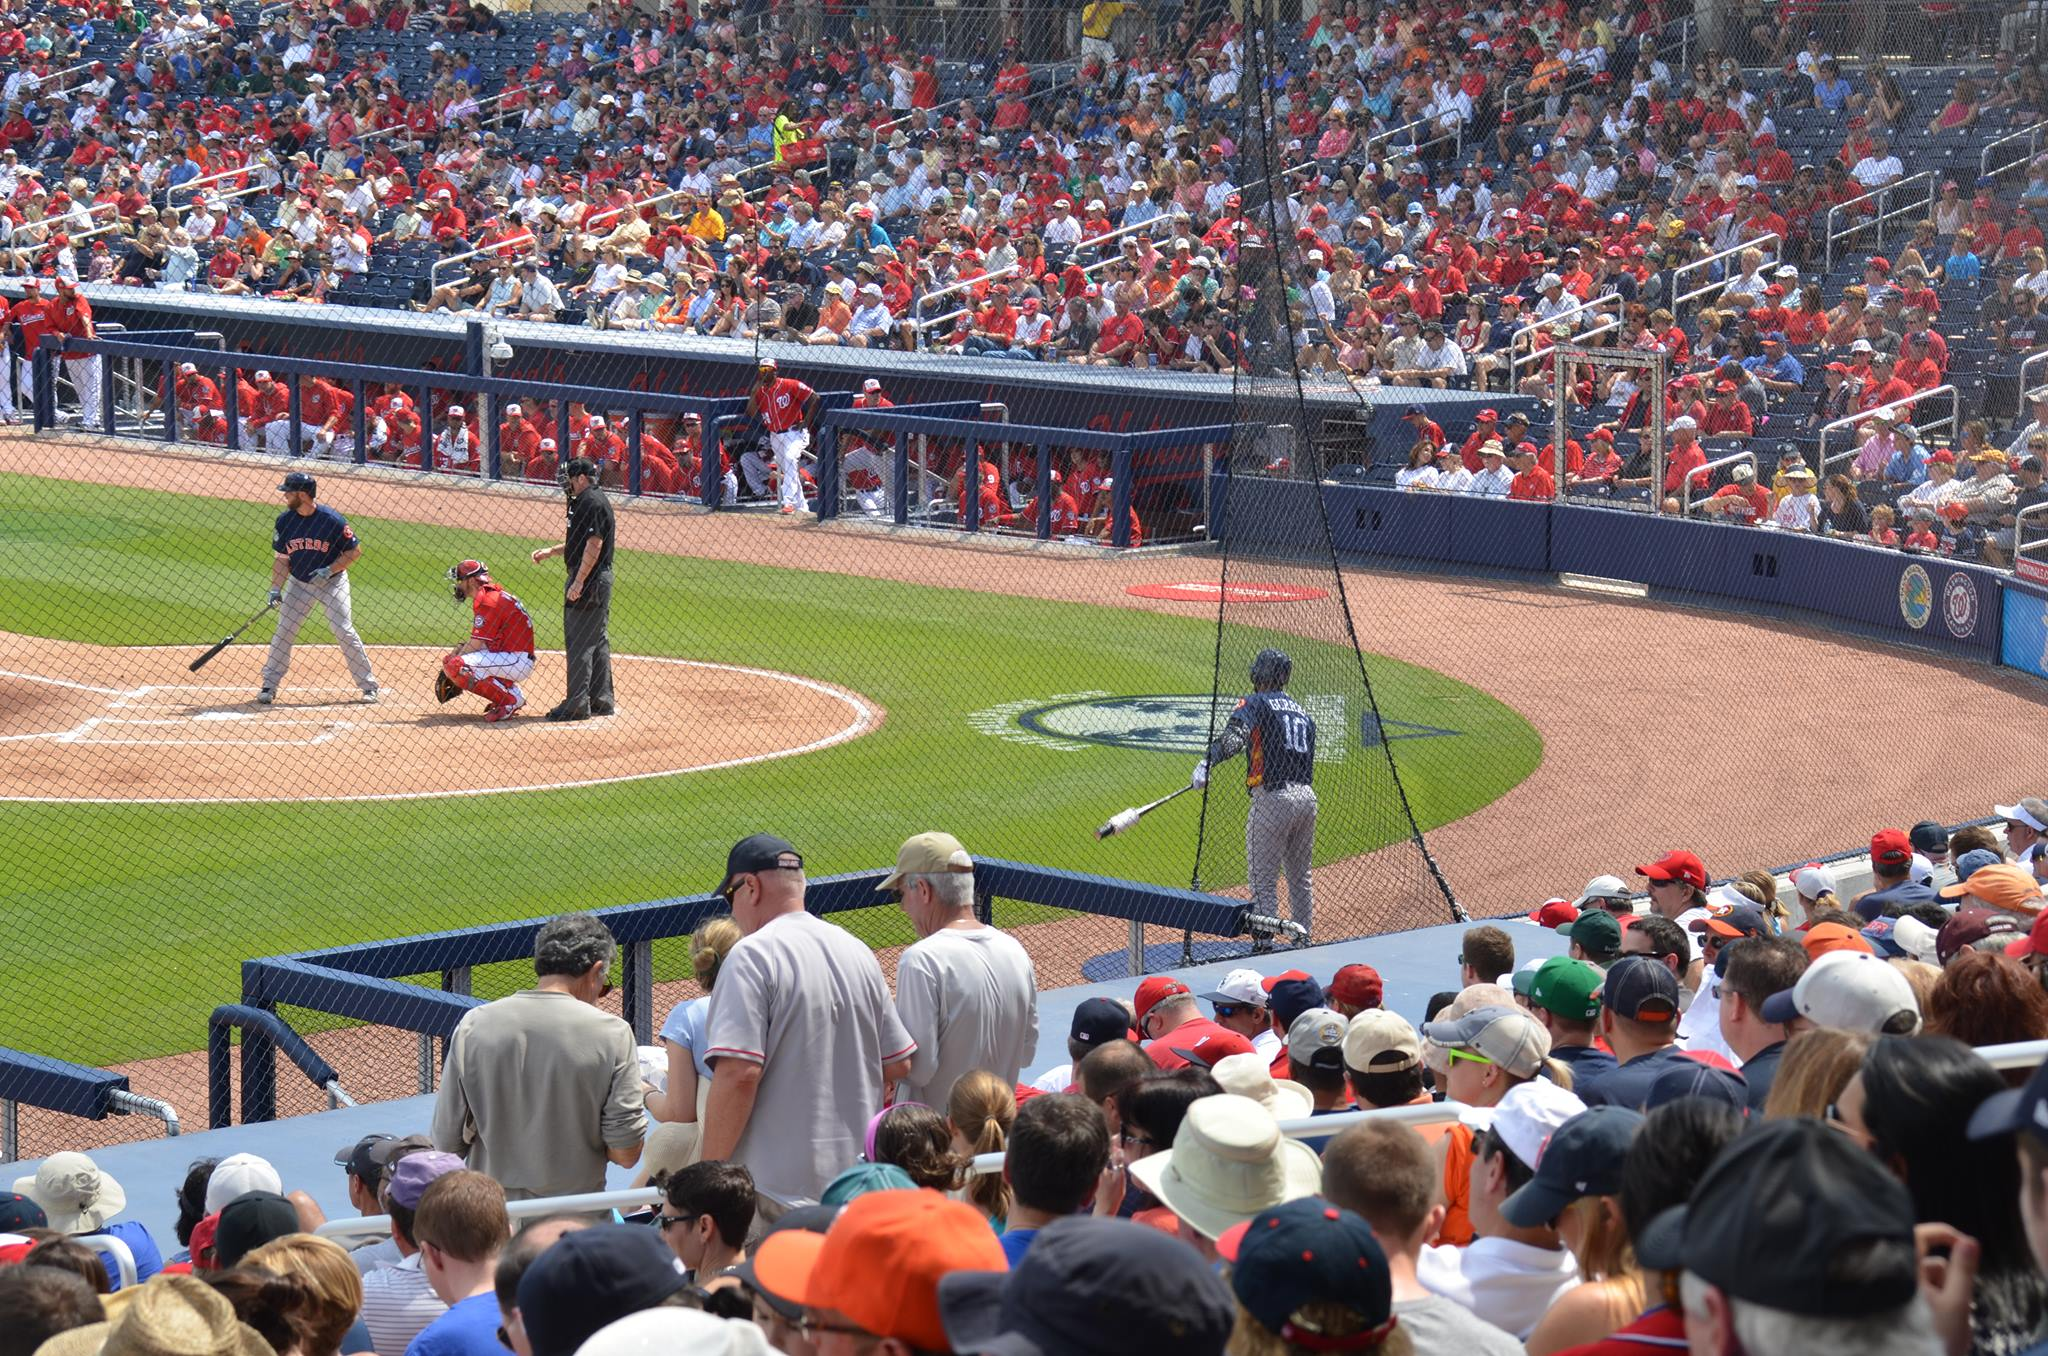 The Ballpark of the Palm Beaches sports